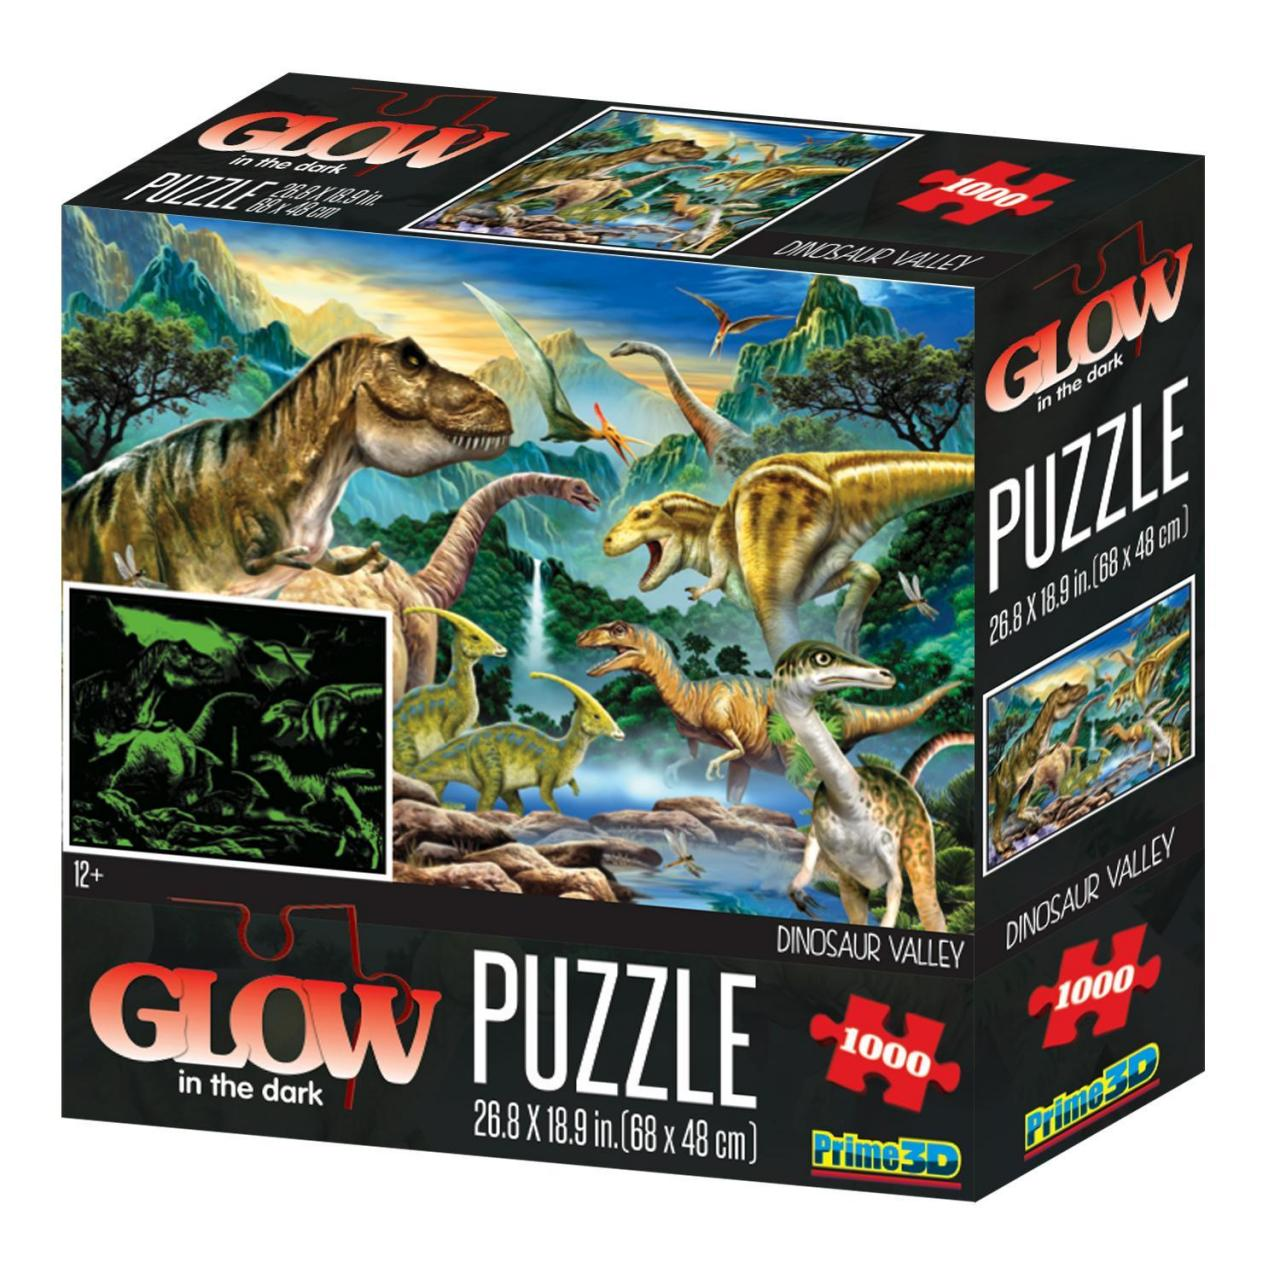 Everyday Gifts Dinosaur Valley Design Glow in the Dark 3D Adult Puzzle